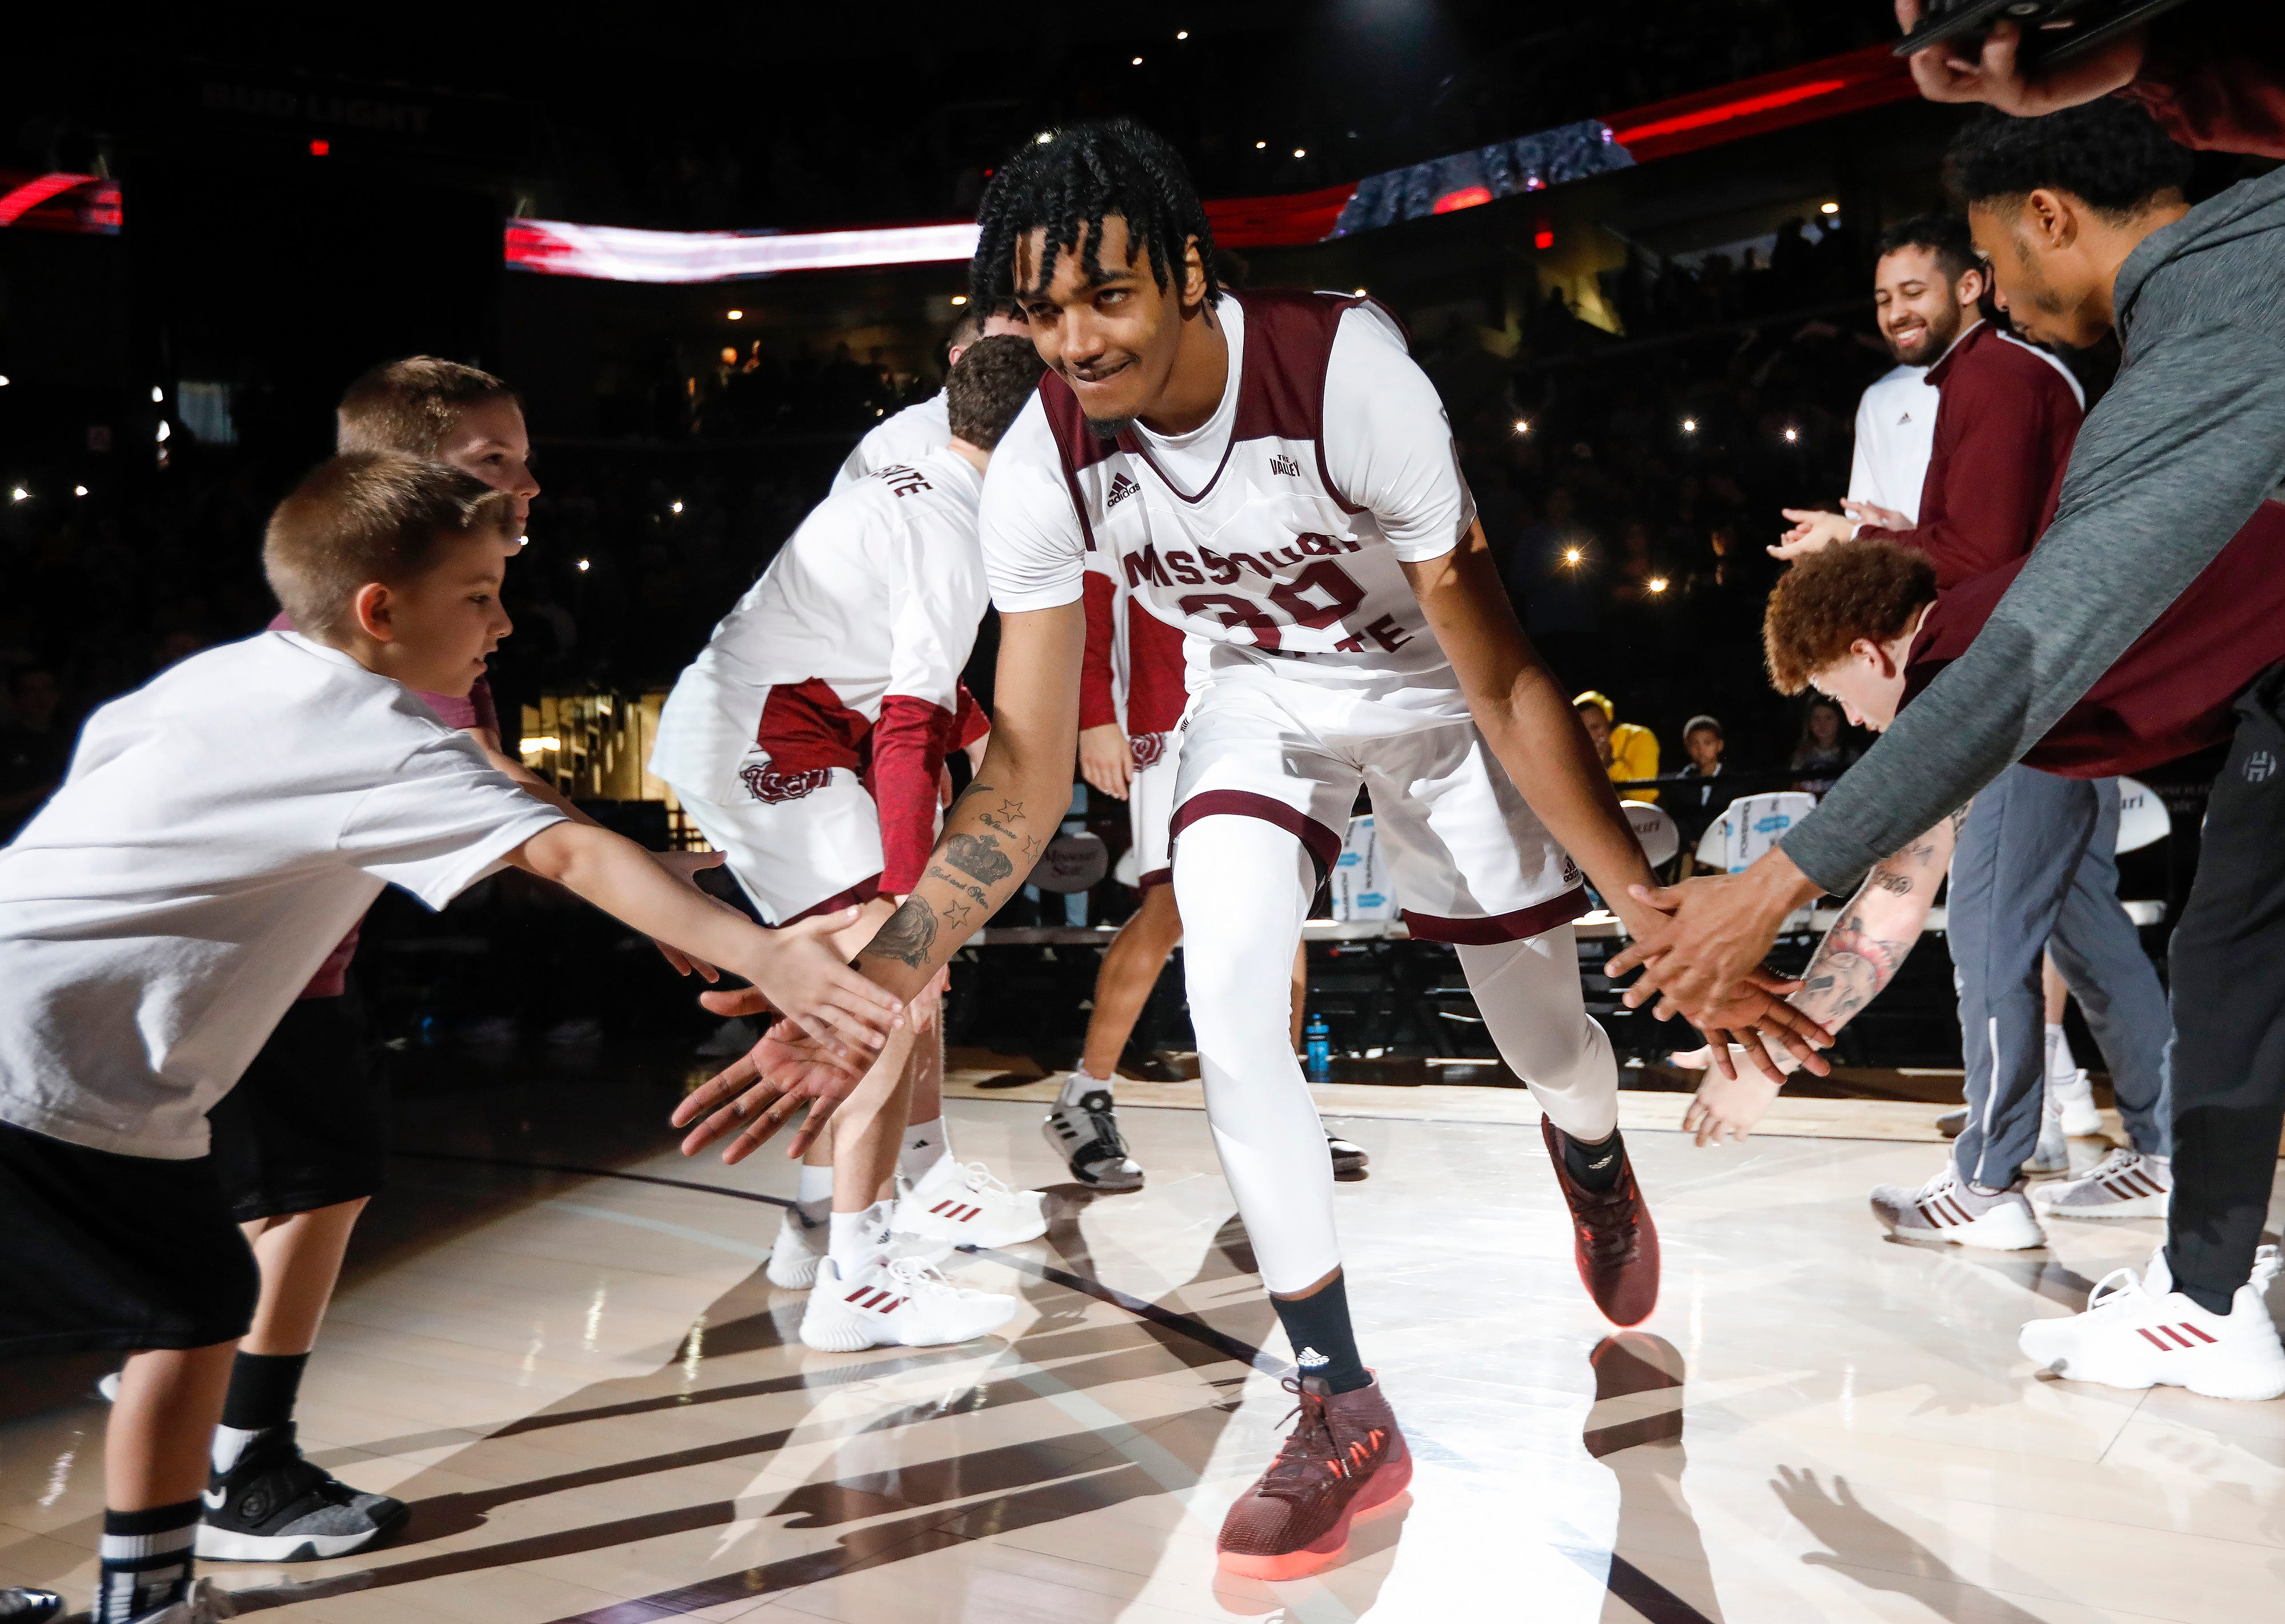 Missouri State fell to Drake 73-62 at JQH Arena on Saturday, Mar. 2, 2019.